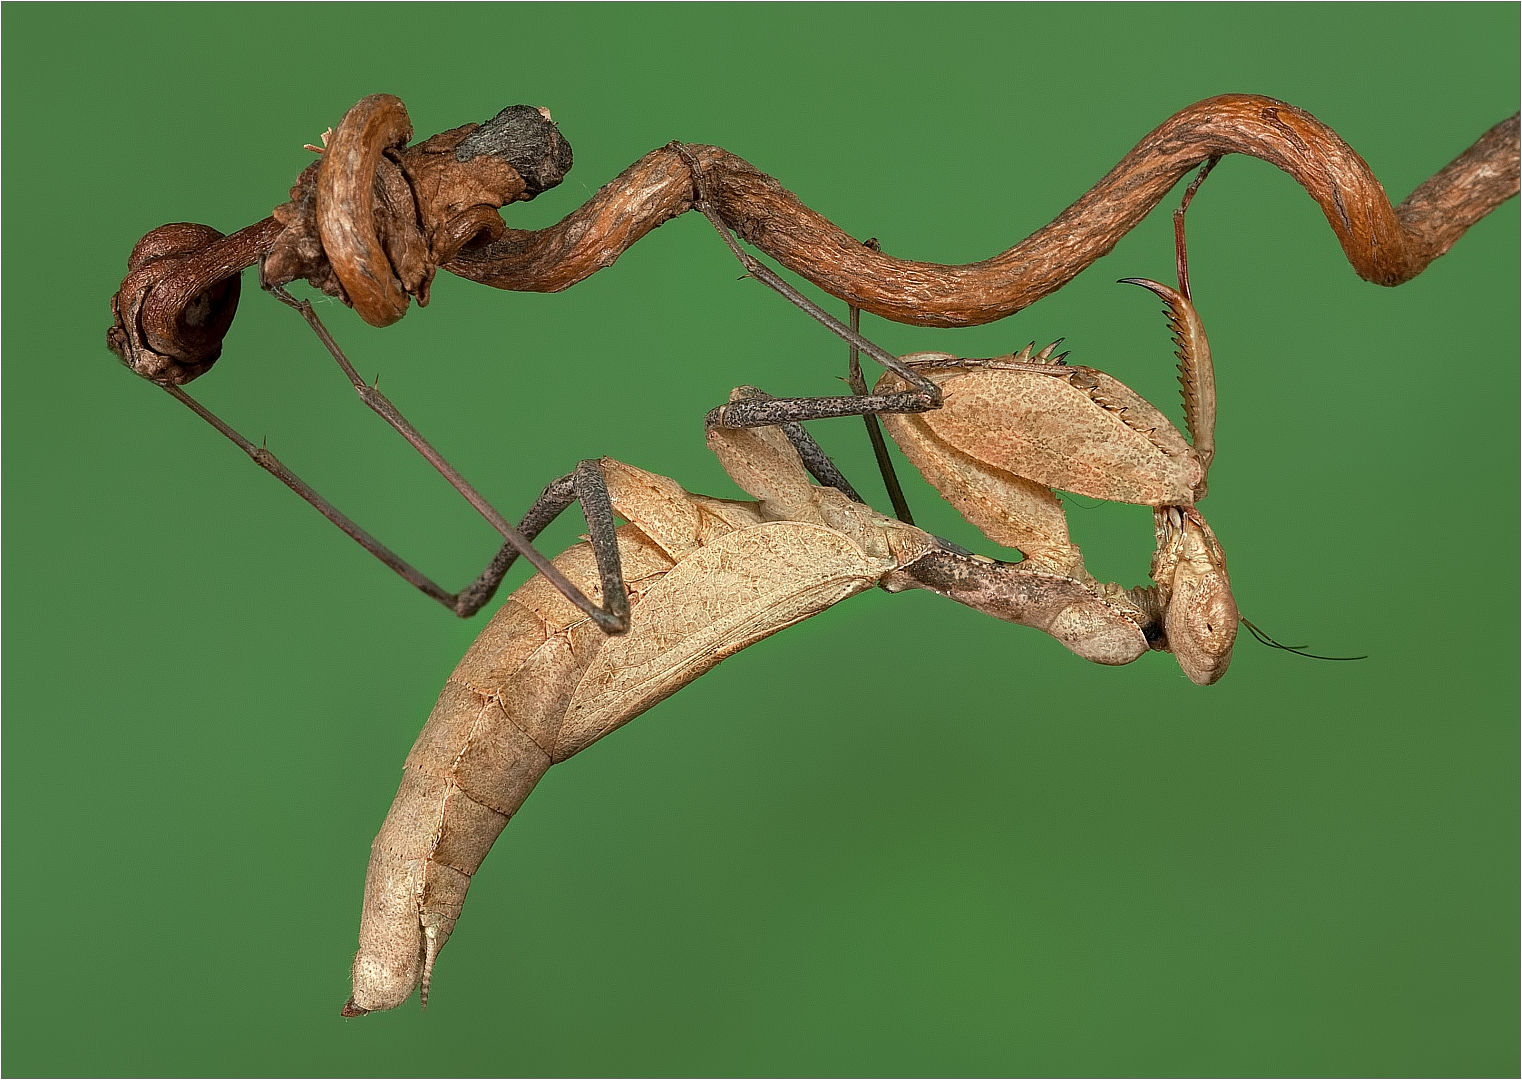 Praying Mantis by Peter van der Horst